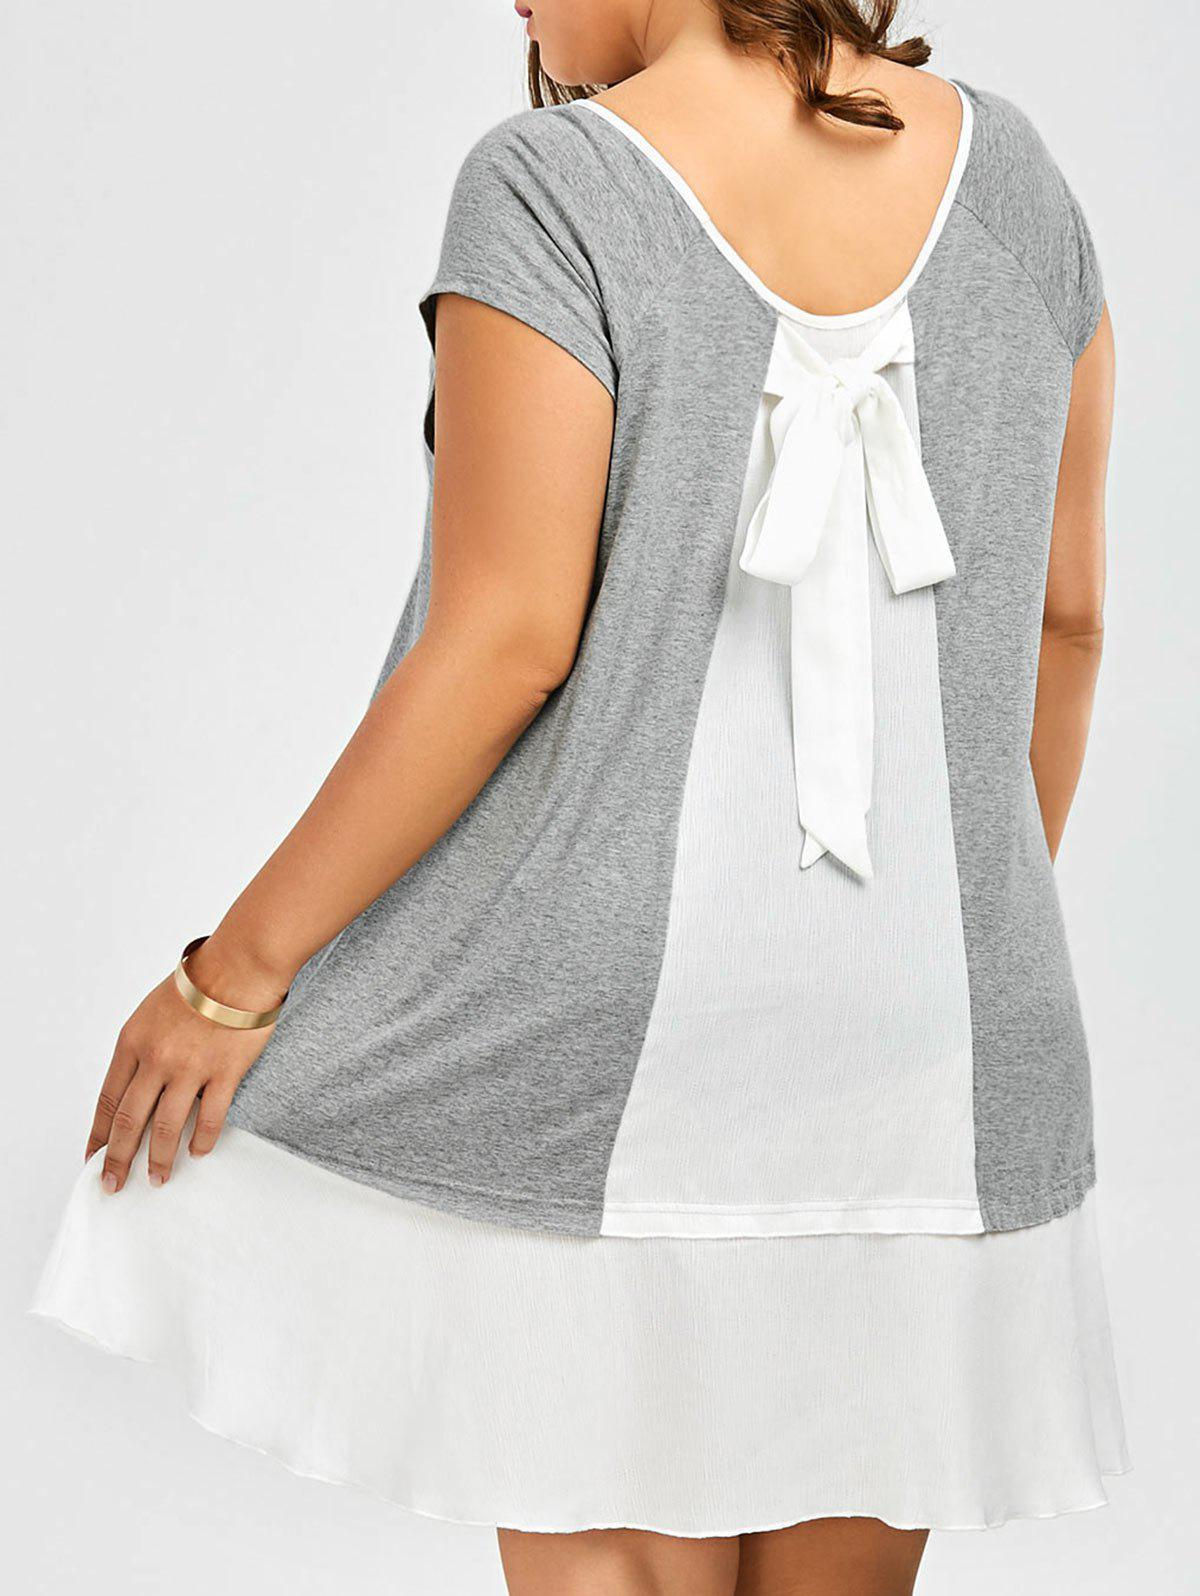 Plus Size Bowknot Detail Flapper Tee Dress side bowknot embellished plus size sweatshirts